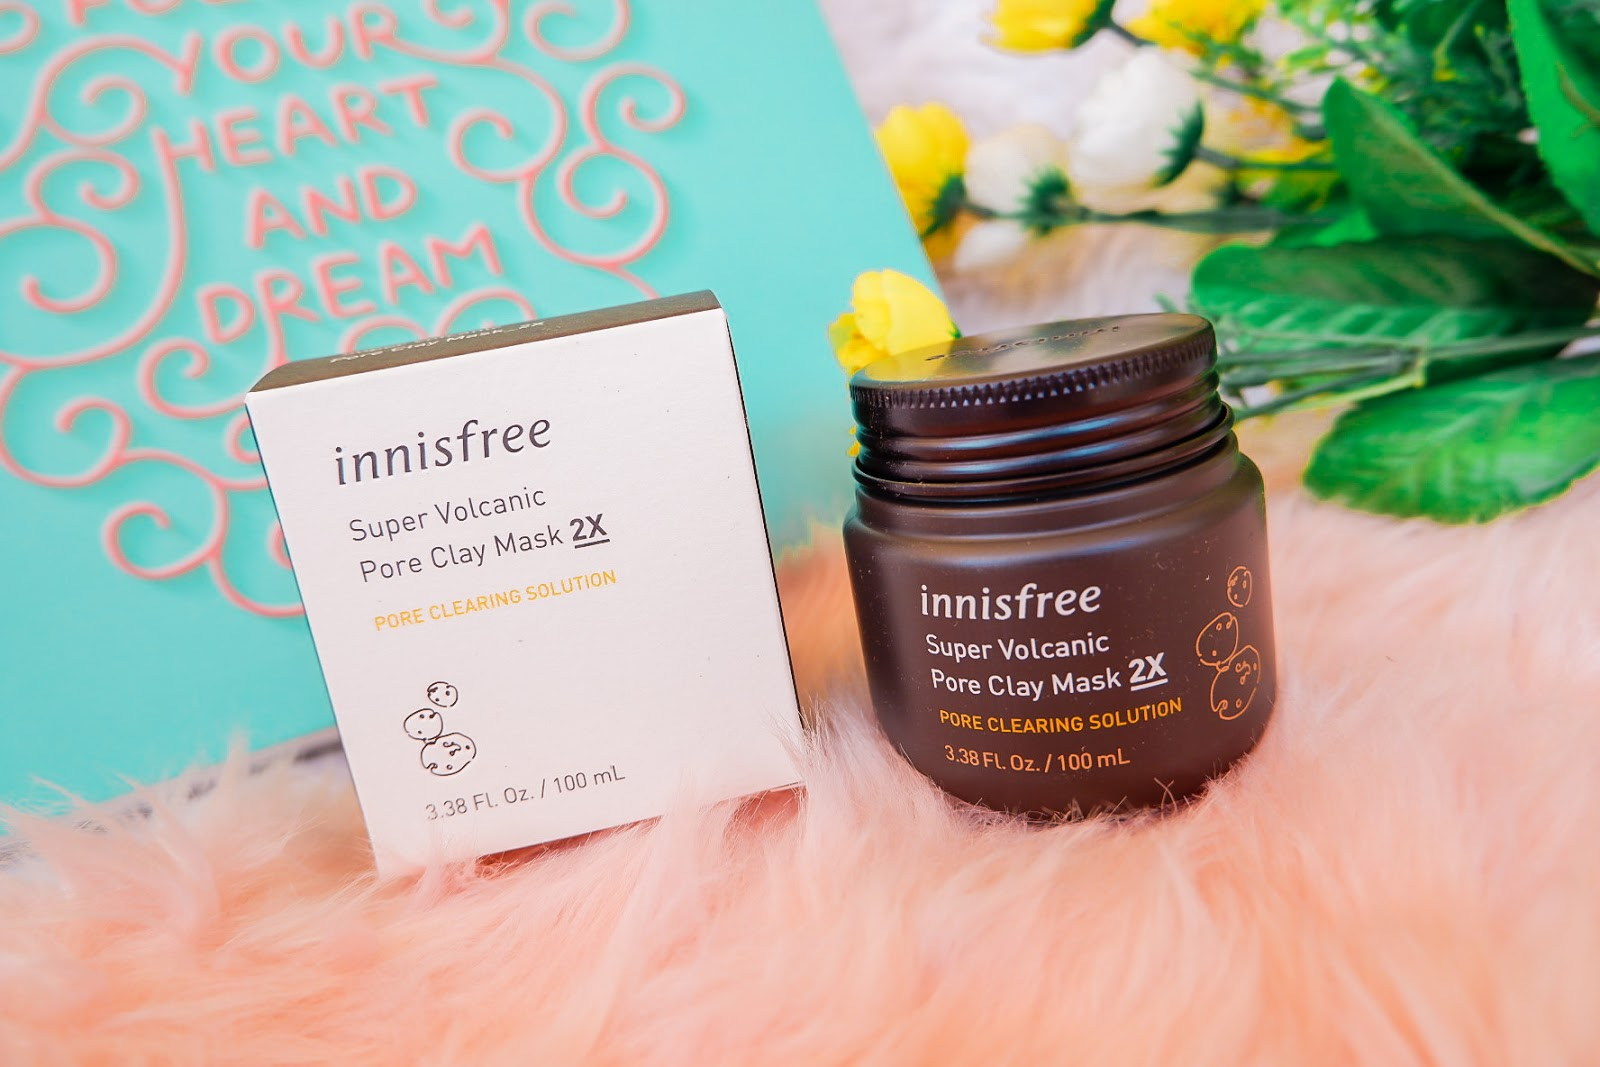 My First Dara Beauty Market Skincare Haul - Innisfree Super Volcanic Pore Clay Mask 2X